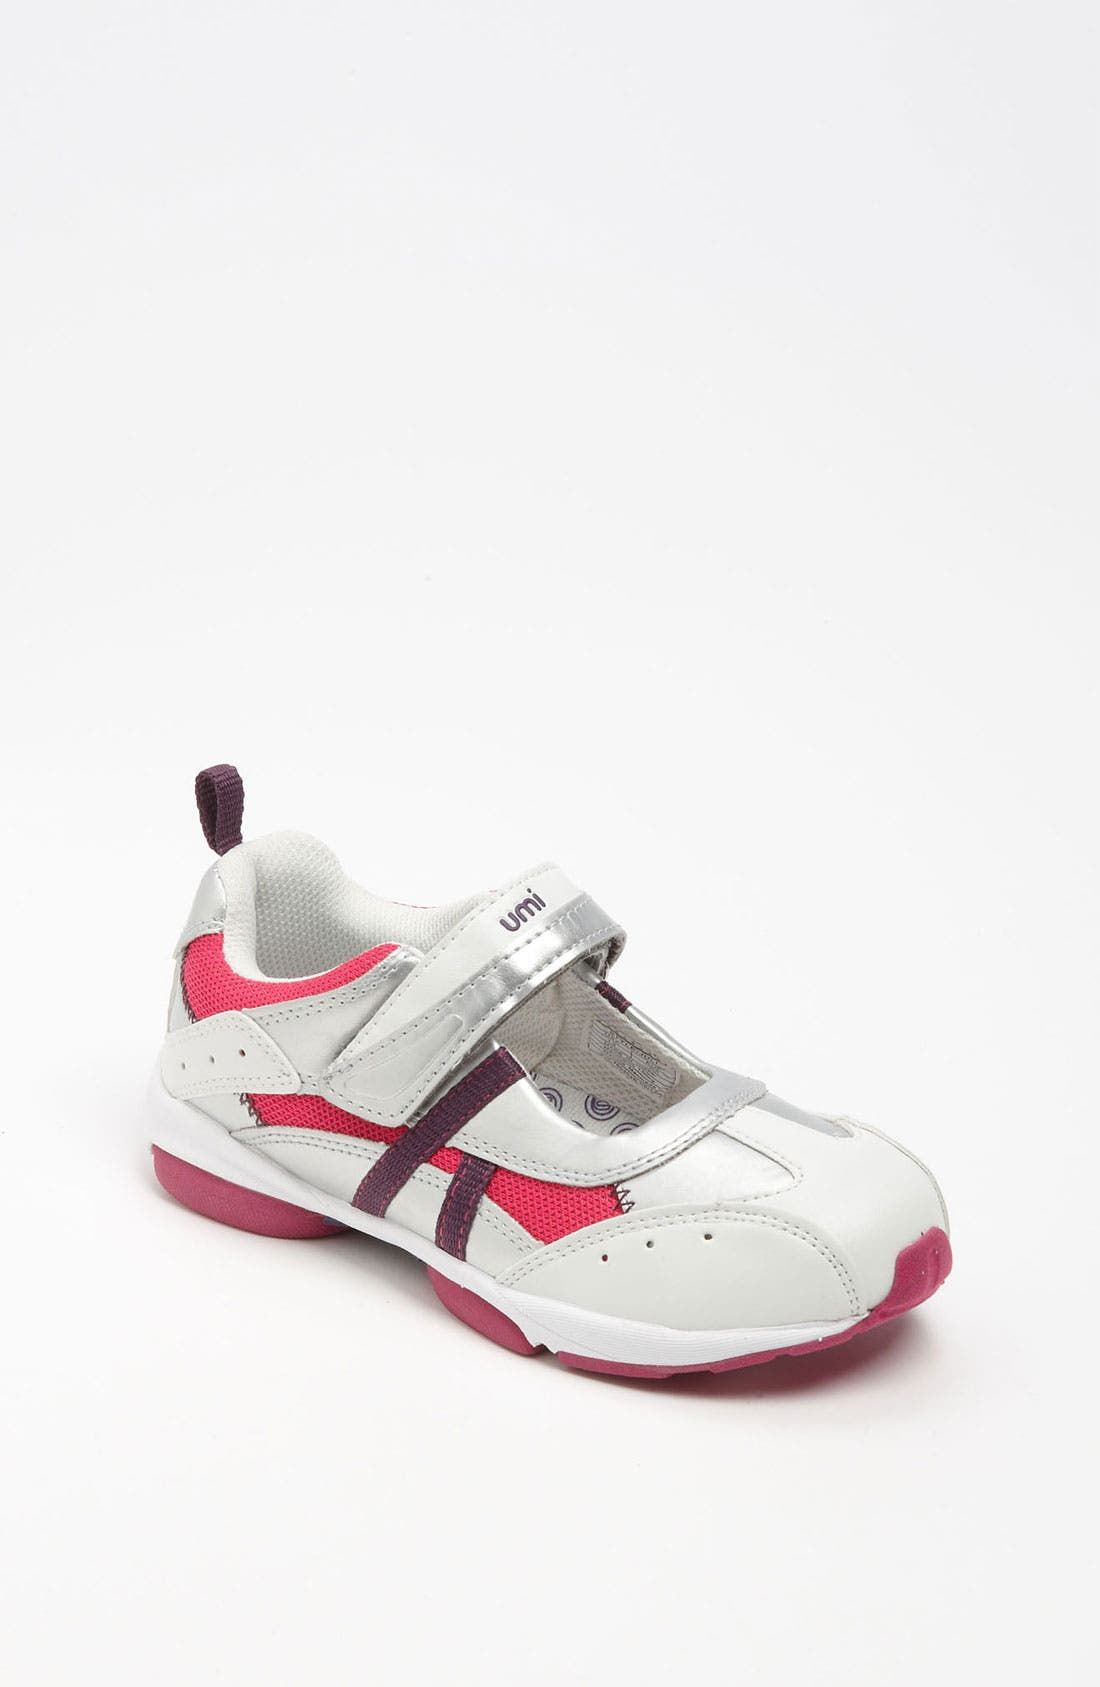 Alternate Image 1 Selected - Umi 'Juli' Sneaker (Toddler, Little Kid & Big Kid)